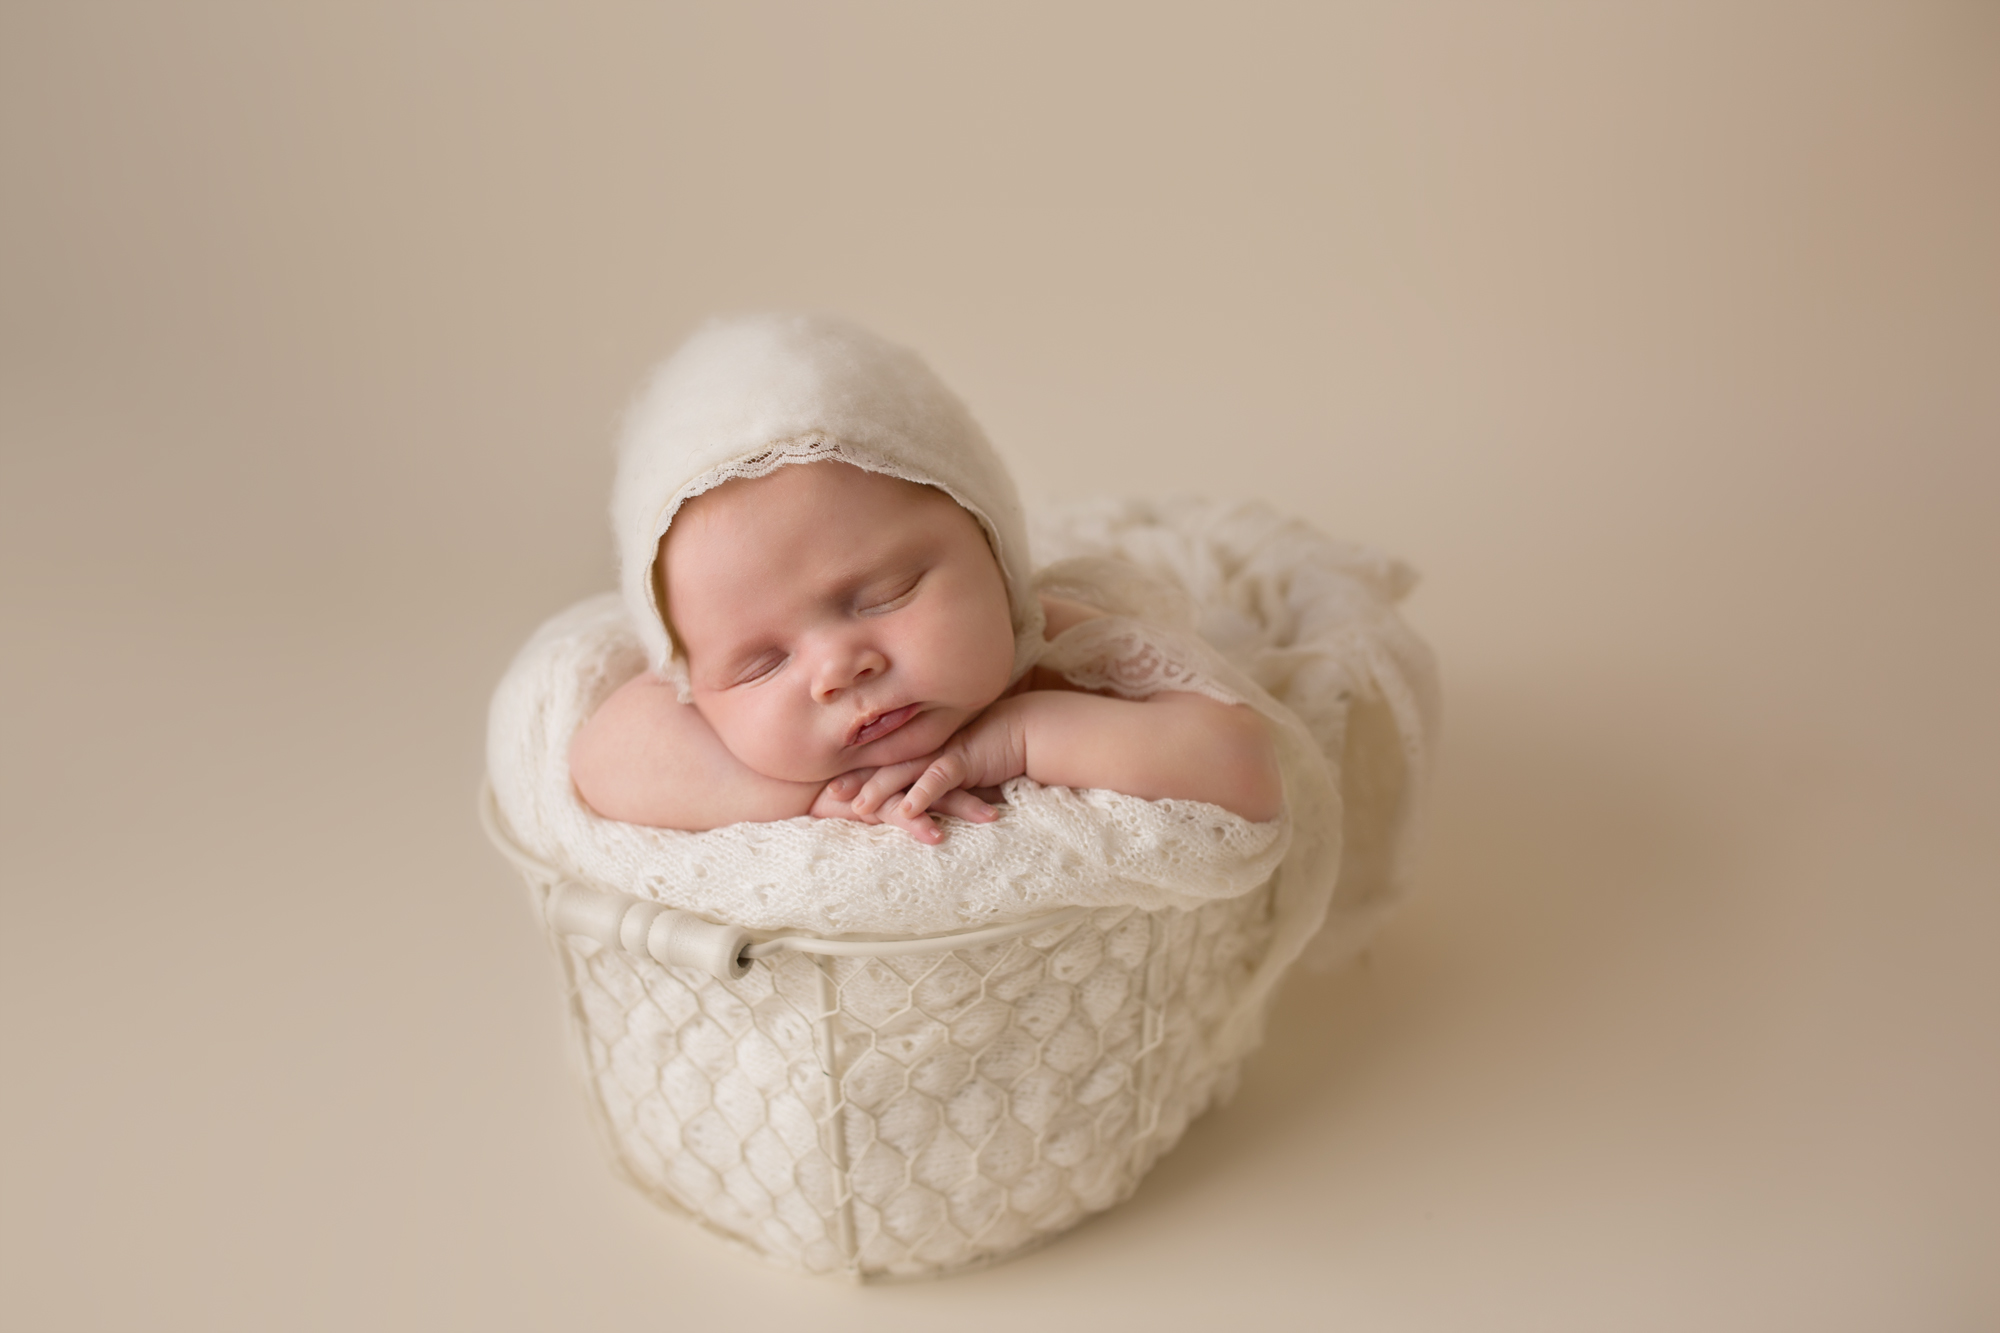 newborn baby girl cream studio